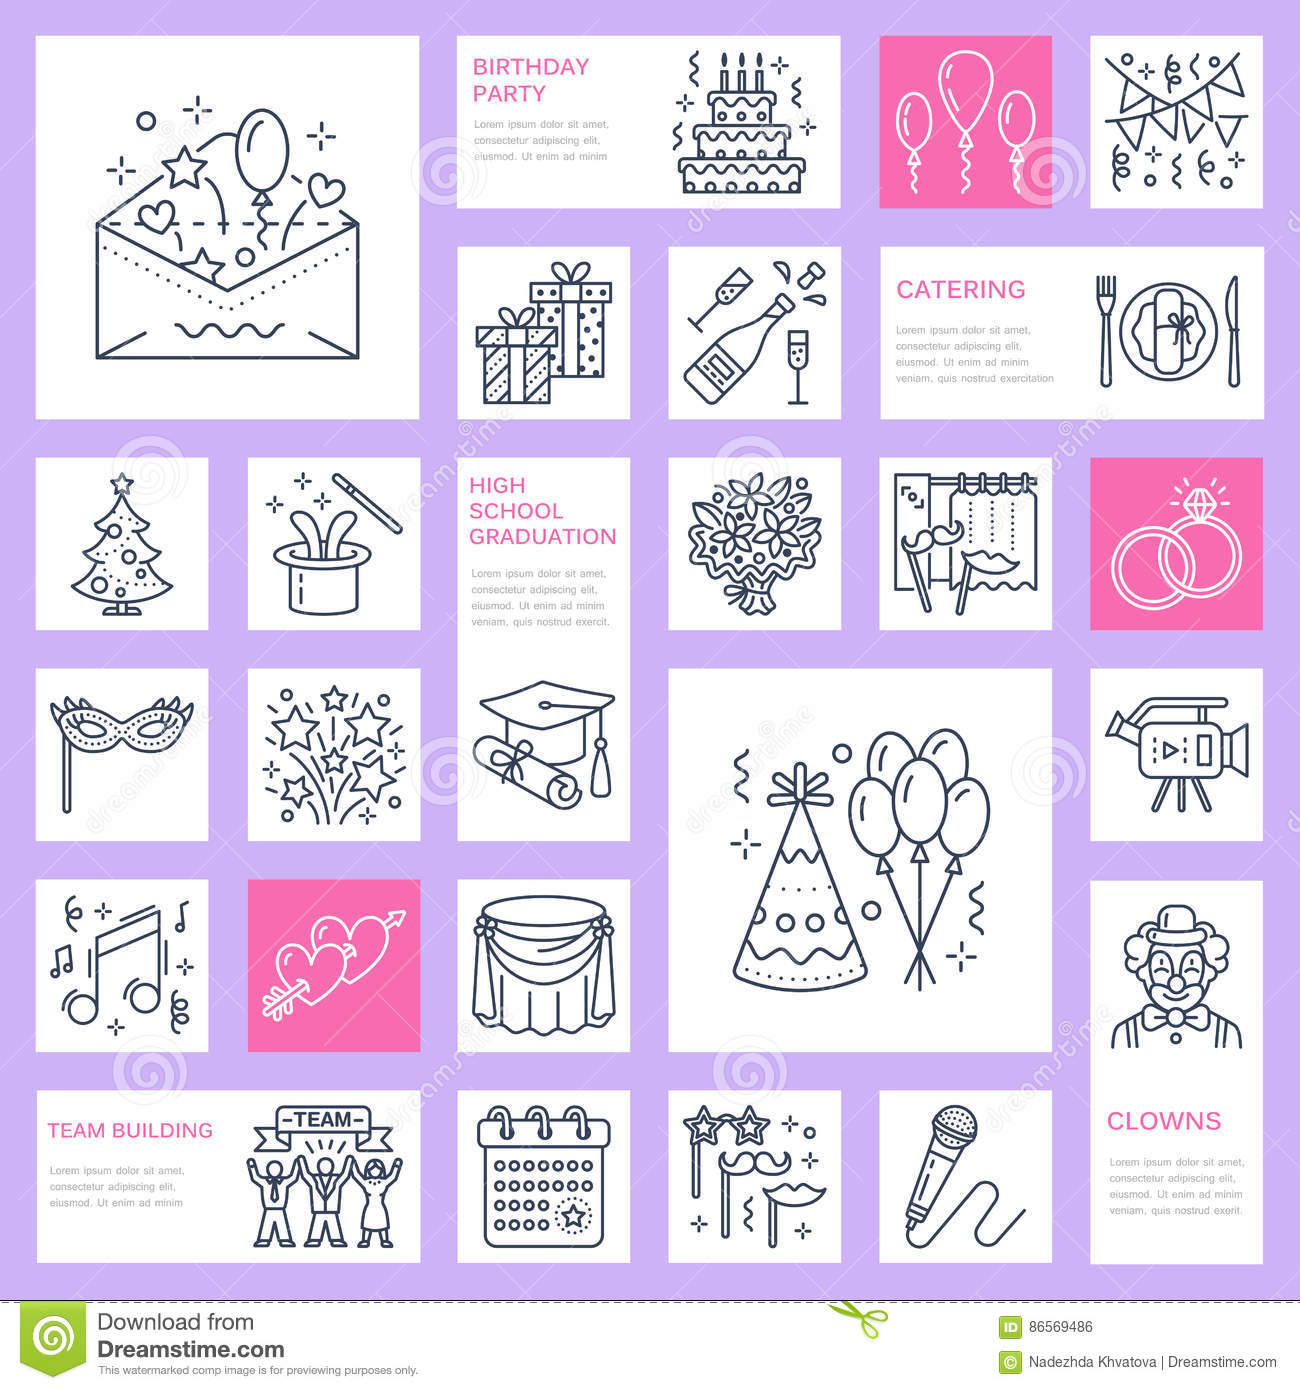 Event agency wedding organization vector line icon party service download event agency wedding organization vector line icon party service catering birthday cake junglespirit Image collections